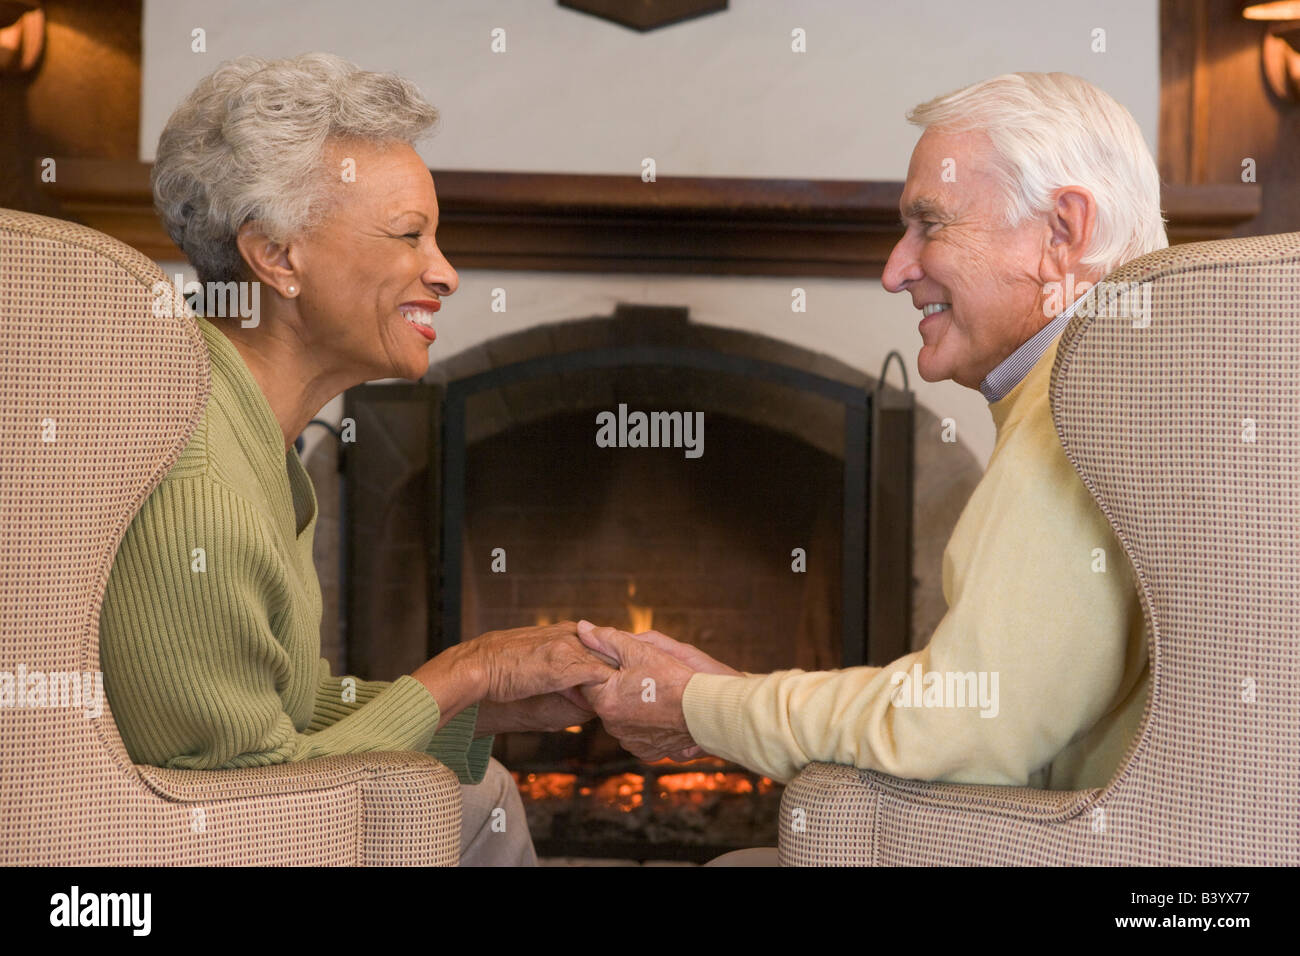 Couple sitting in living room by fireplace holding hands and smiling - Stock Image